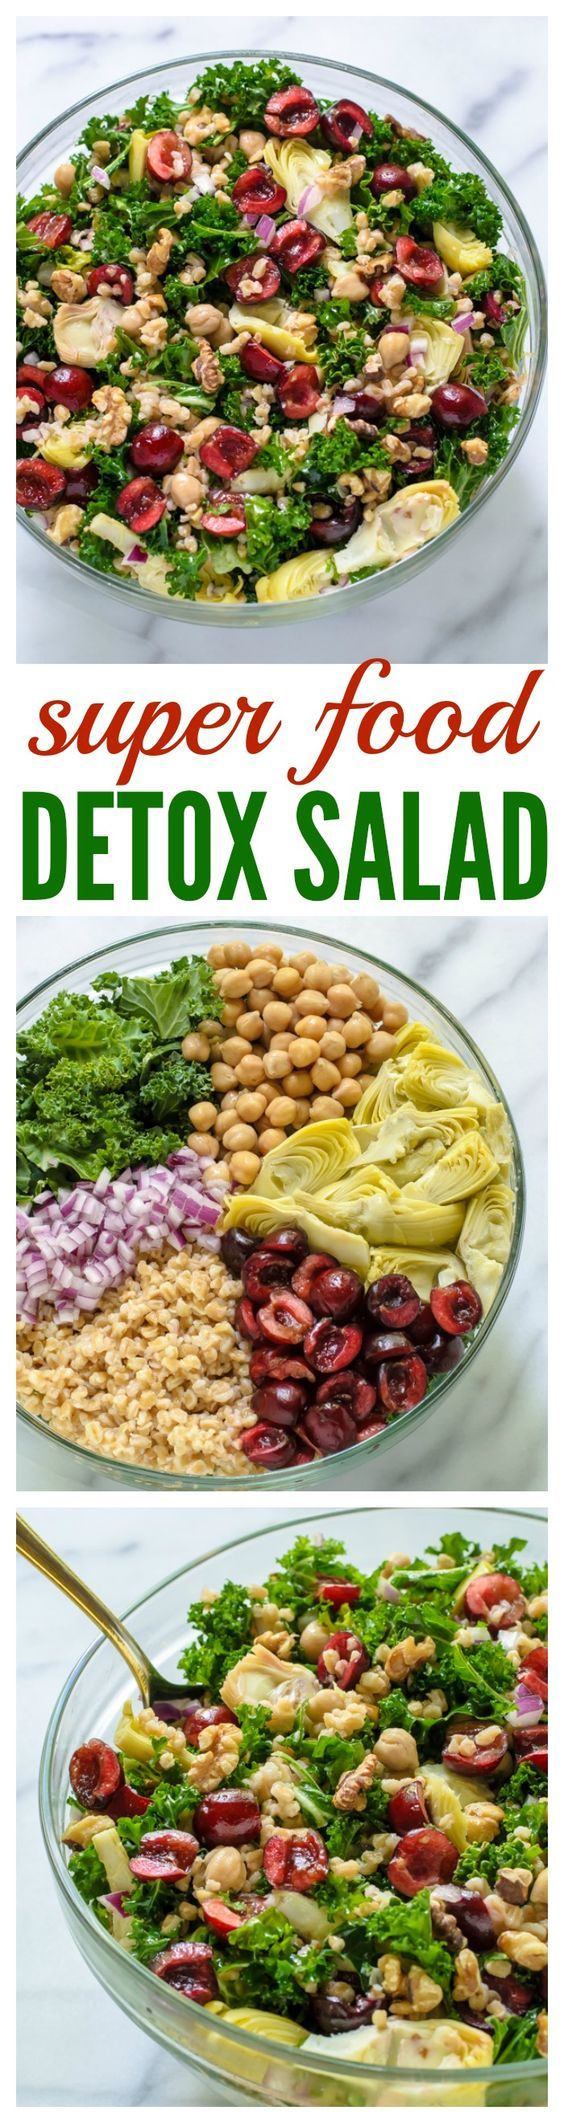 Super Food Detox Salad with Cherries and Kale